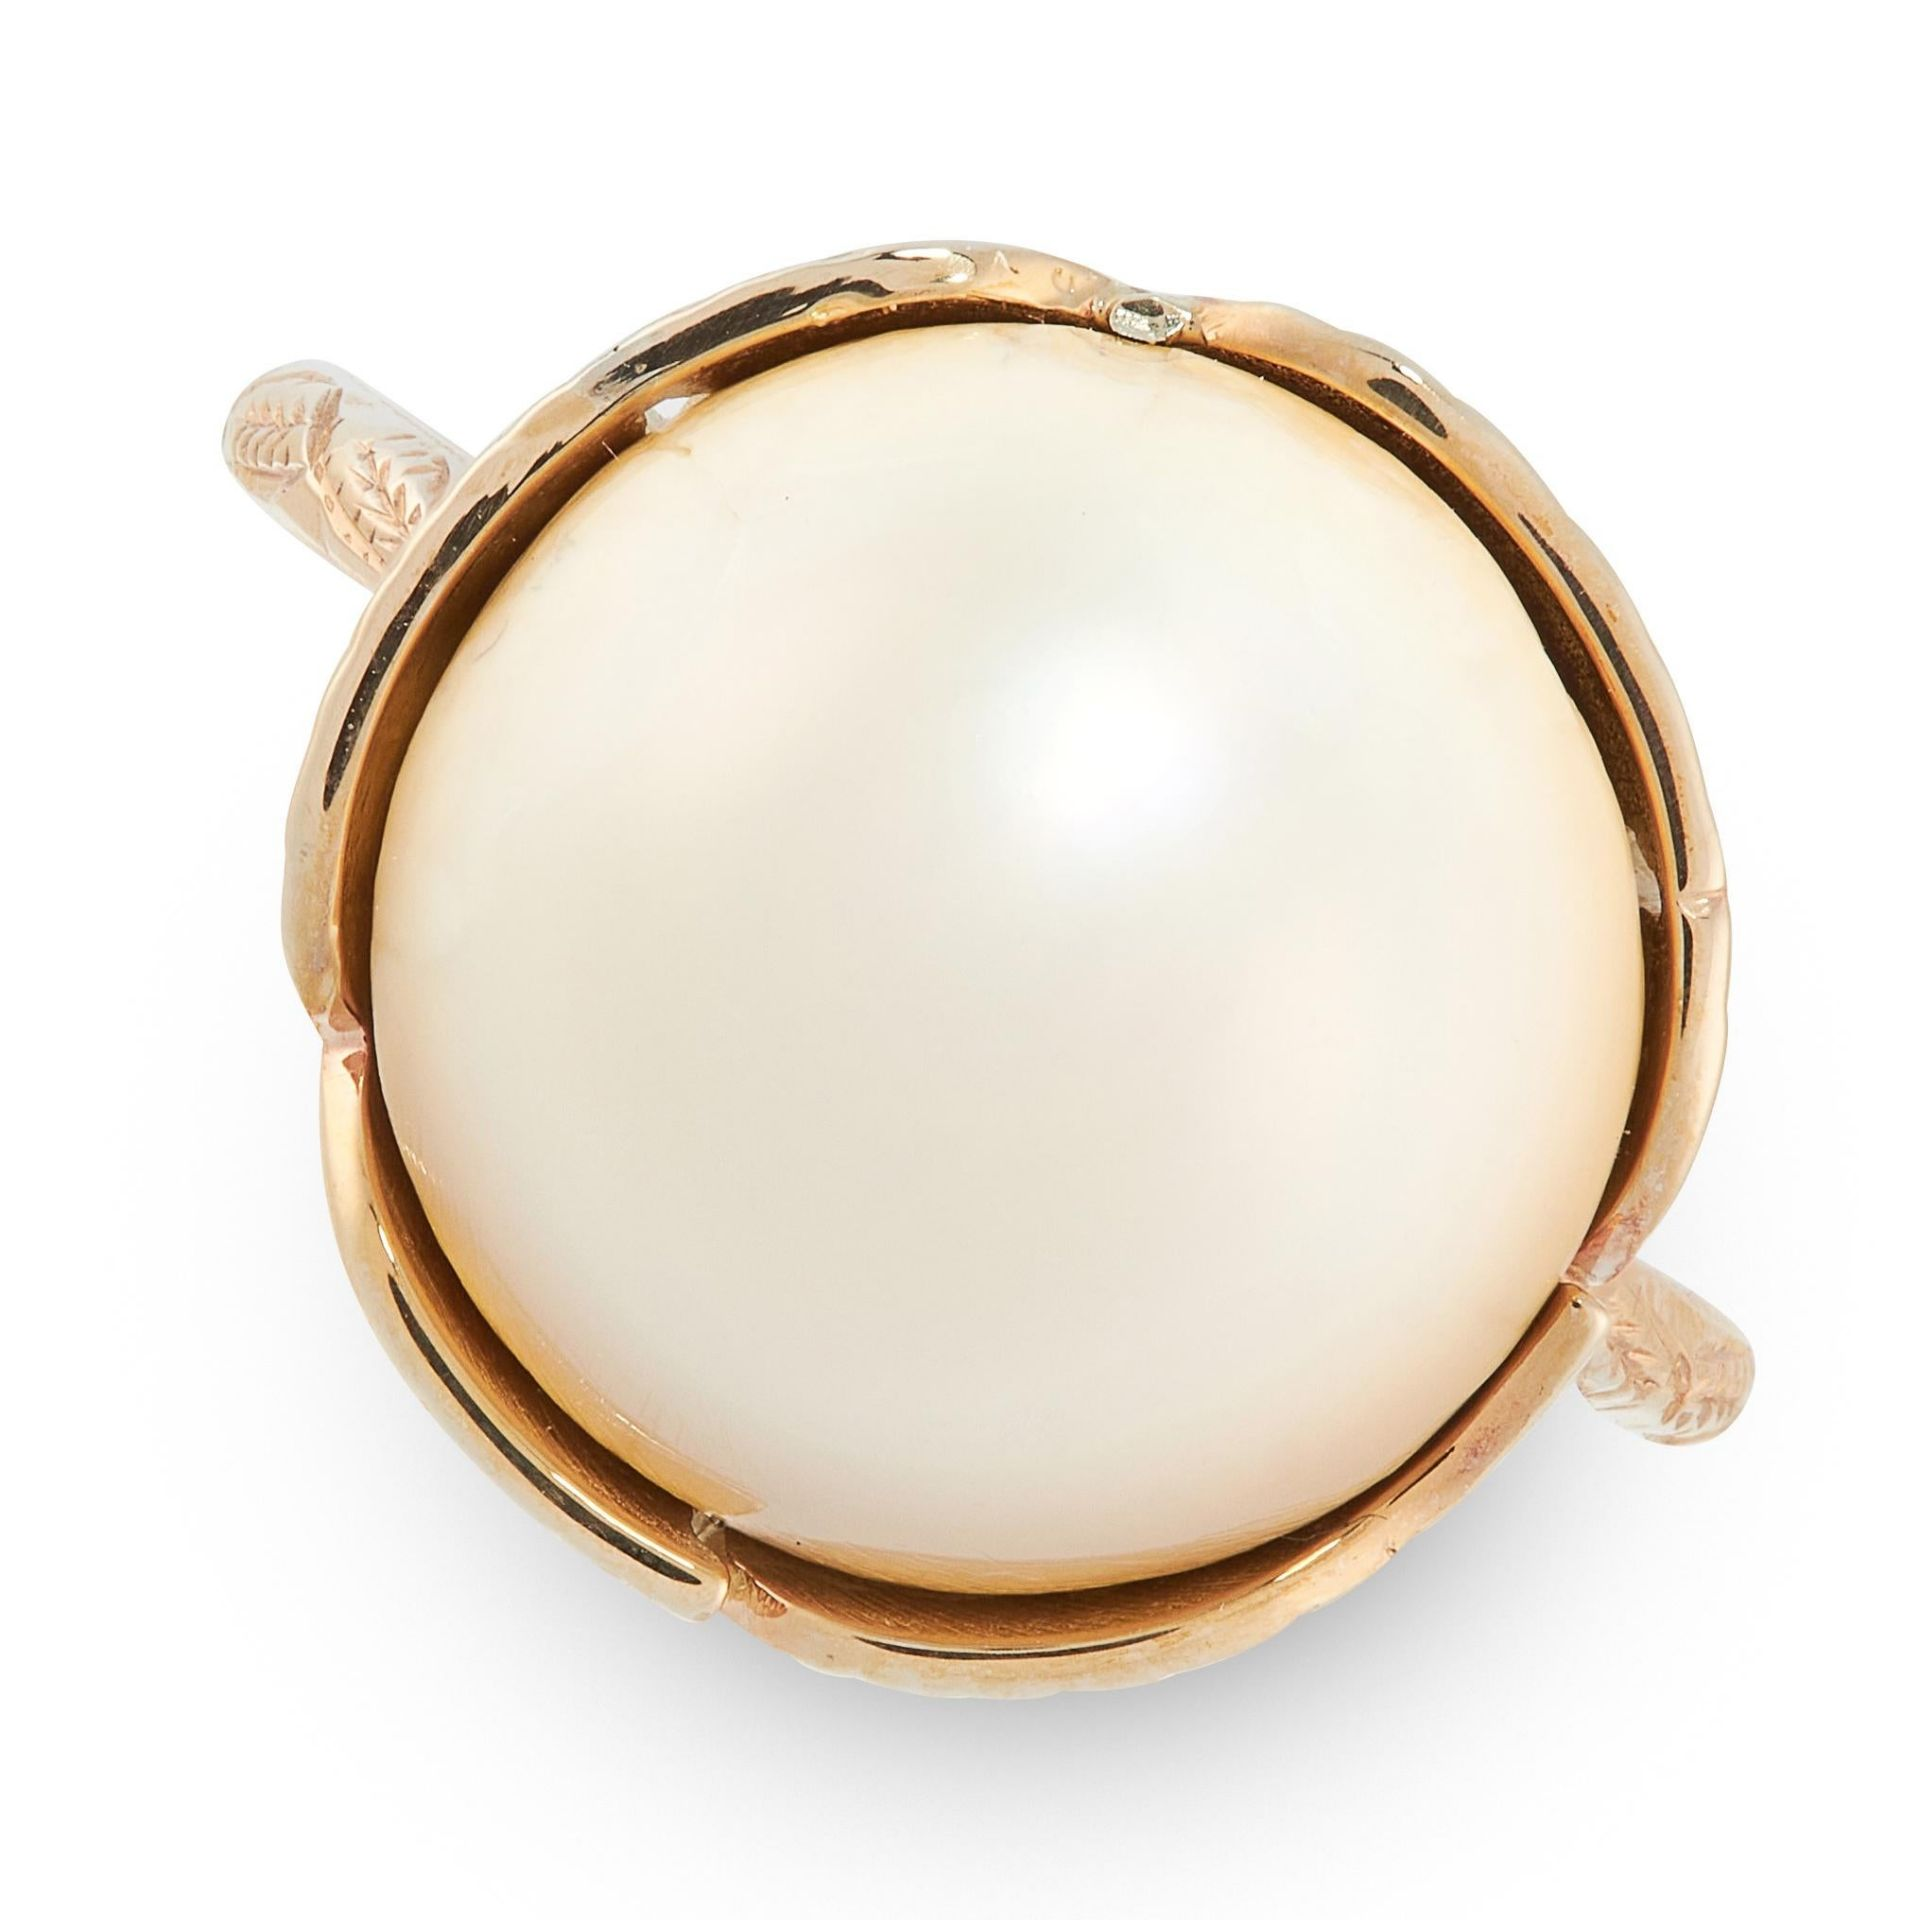 A NATURAL PEARL DRESS RING in yellow gold, set with a circular natural blister pearl of 13.81mm,